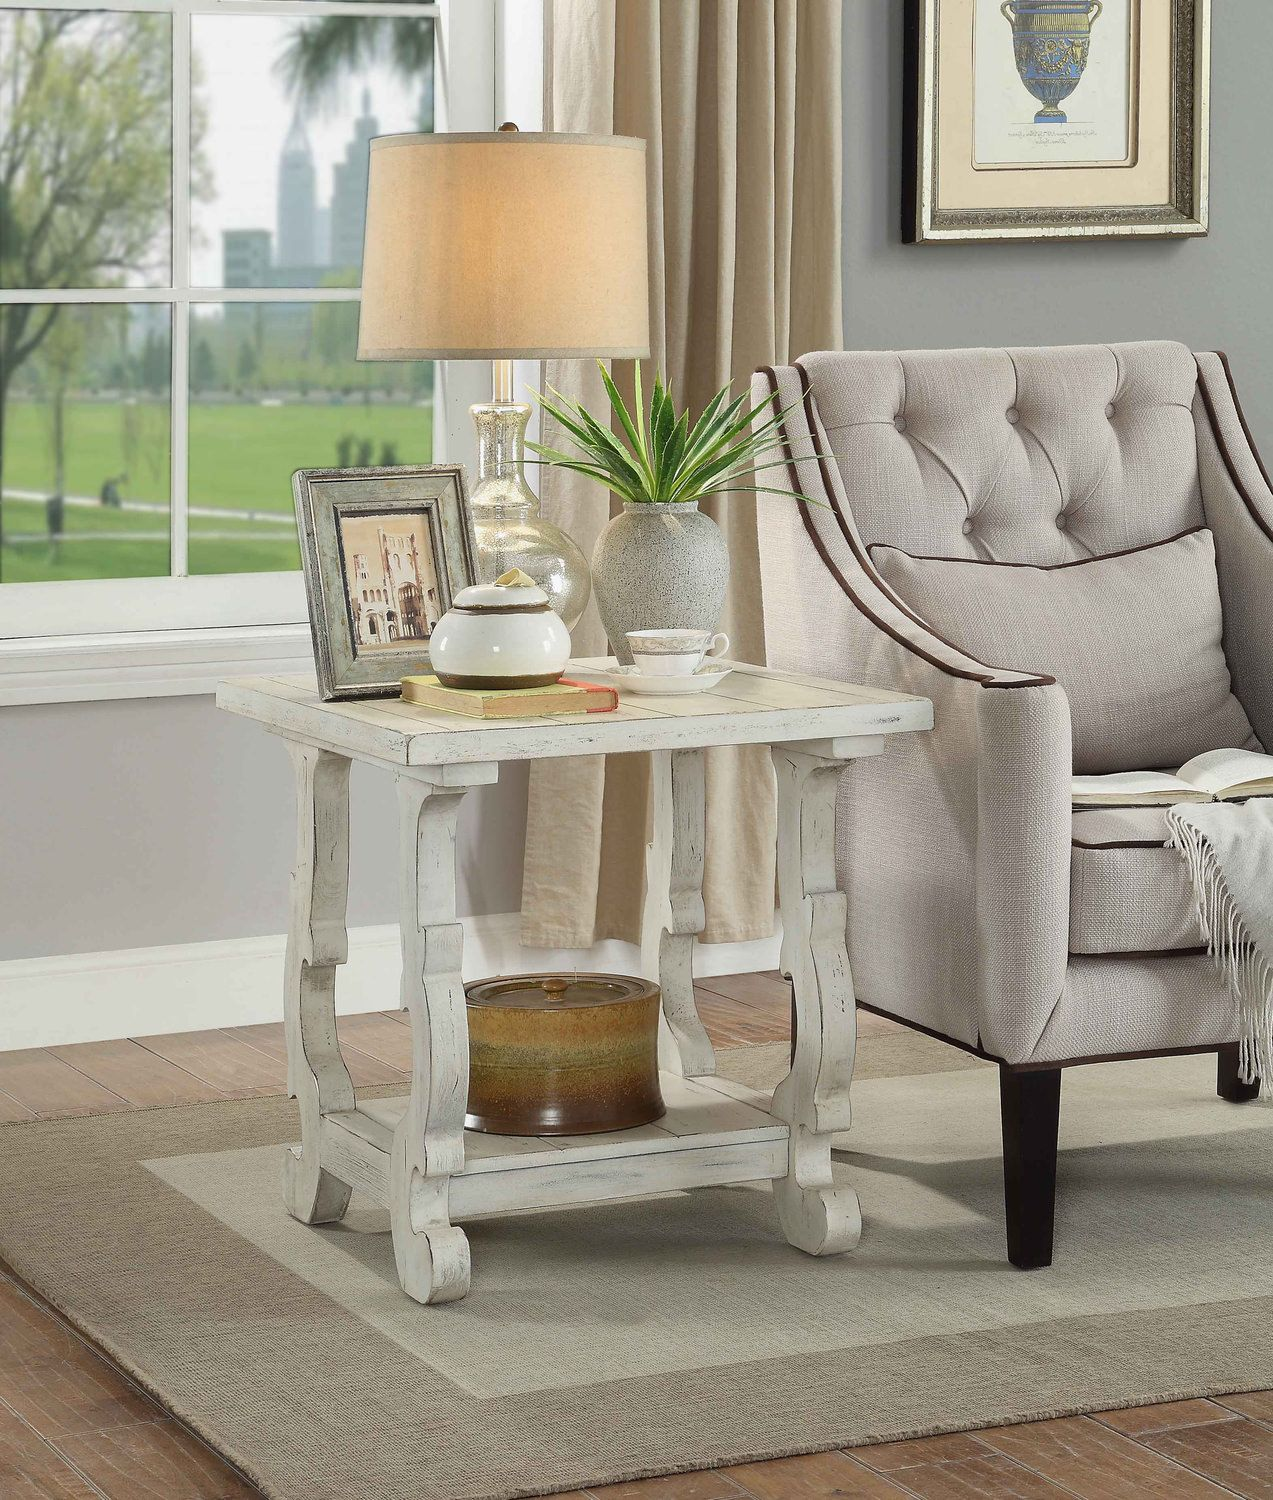 Klein End Table Dock86 Living Room End Table Decor Table Lamps Living Room Living Room End Tables Decorating end tables without lamps